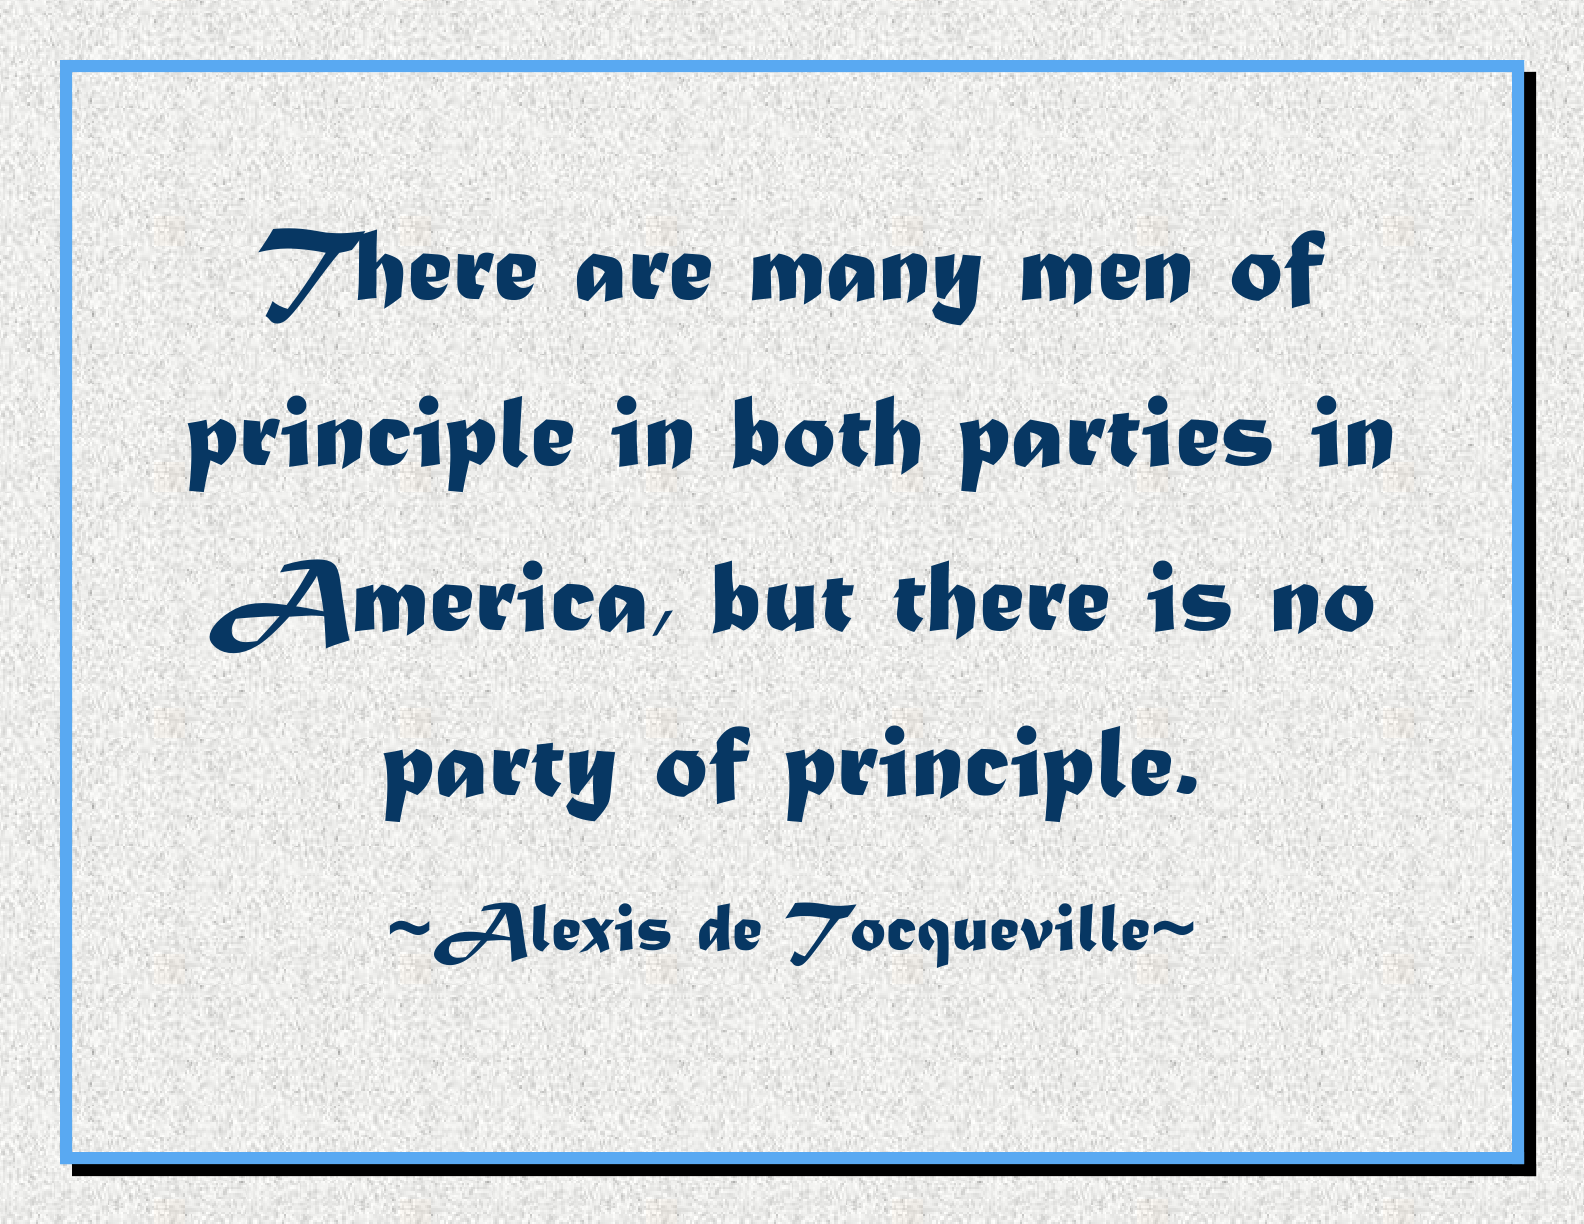 """Liven up your classroom environment with one of the greatest thinkers about America -- the Frenchman, Alexis de Tocqueville, who visited the U.S. and wrote the landmark work """"Democracy in America"""" to chronicle his observations. 20 printable posters included, each available in a variety of colors and fonts! These Tocqueville posters are great for debate and discussion -- get students thinking about in what ways America today still looks like the nation Tocqueville visited in the 1800s!"""